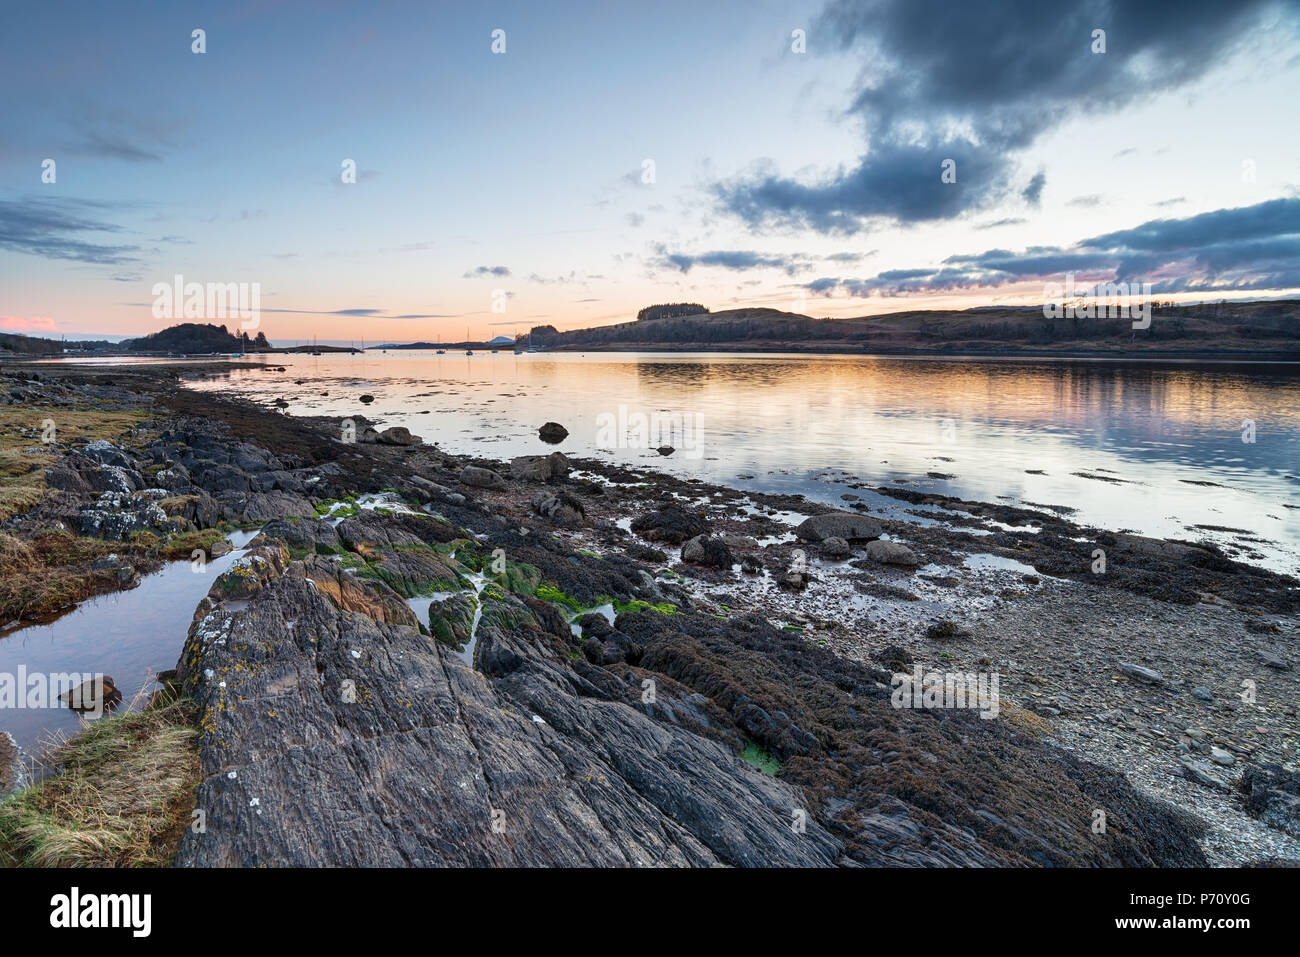 Sunset over Loch Linnhe,  a sea loch on the west coast of Scotland - Stock Image